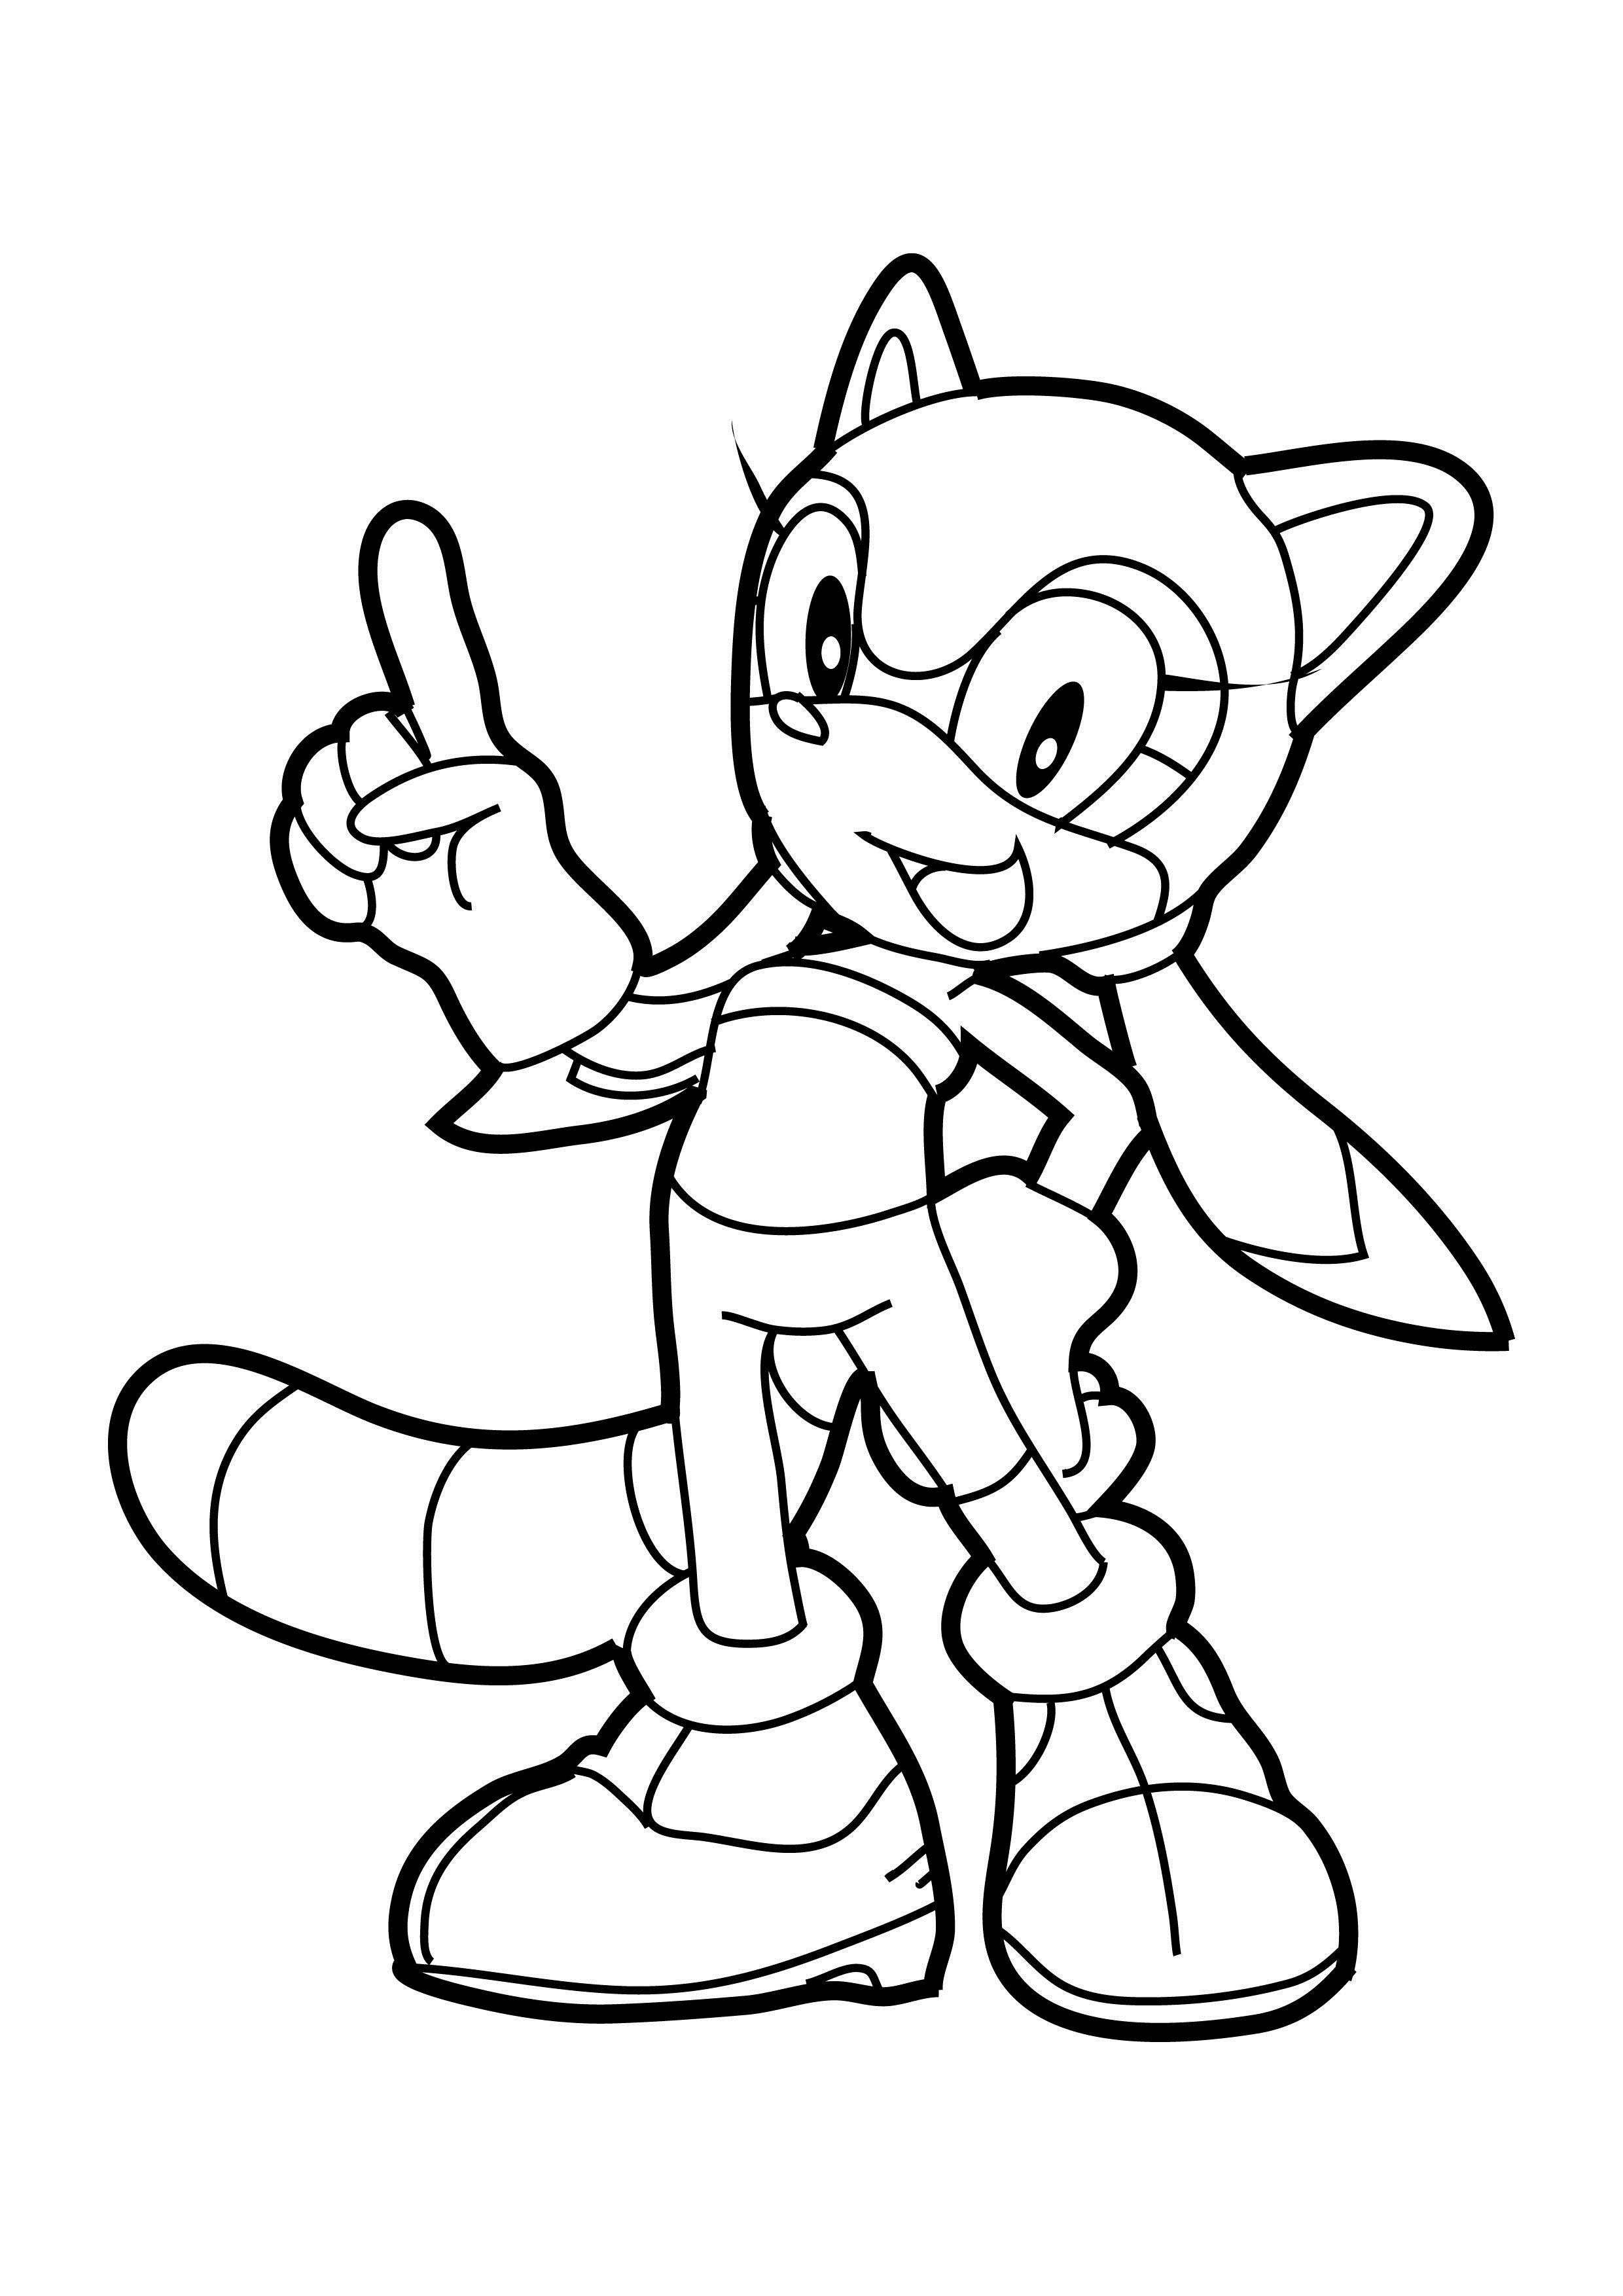 sonic the hedgehog coloring pages - Sonic Coloring Pages